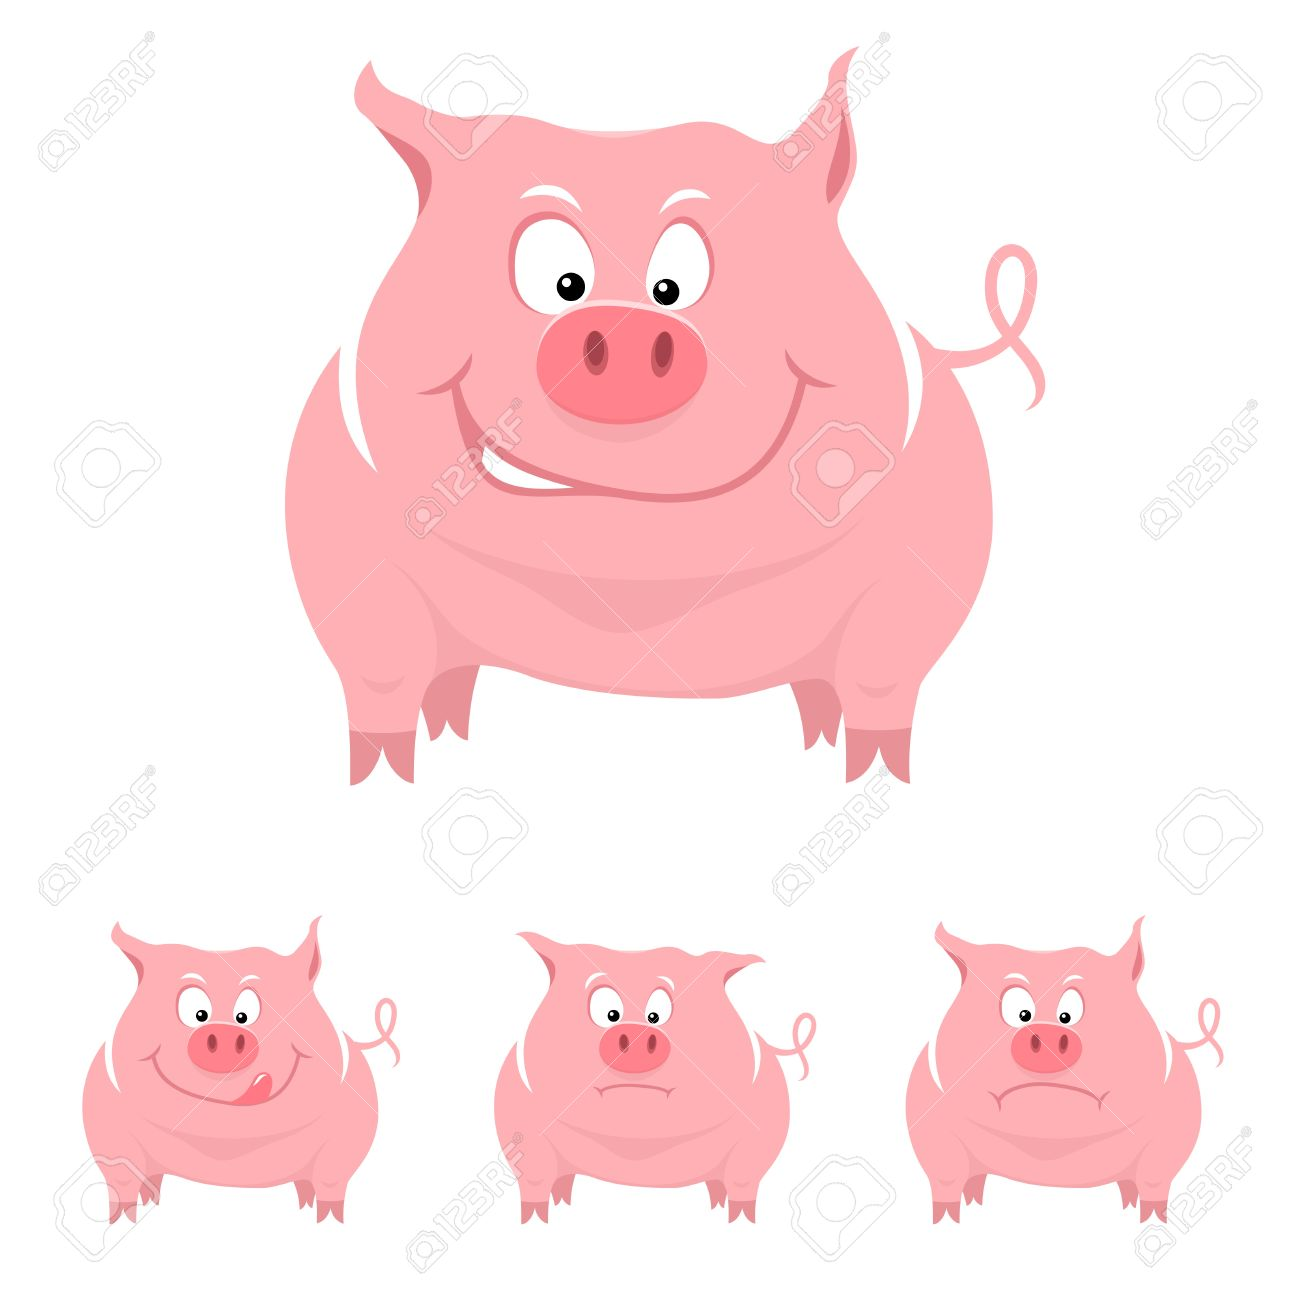 Funny cartoon pig with various emotions Stock Vector - 14382517